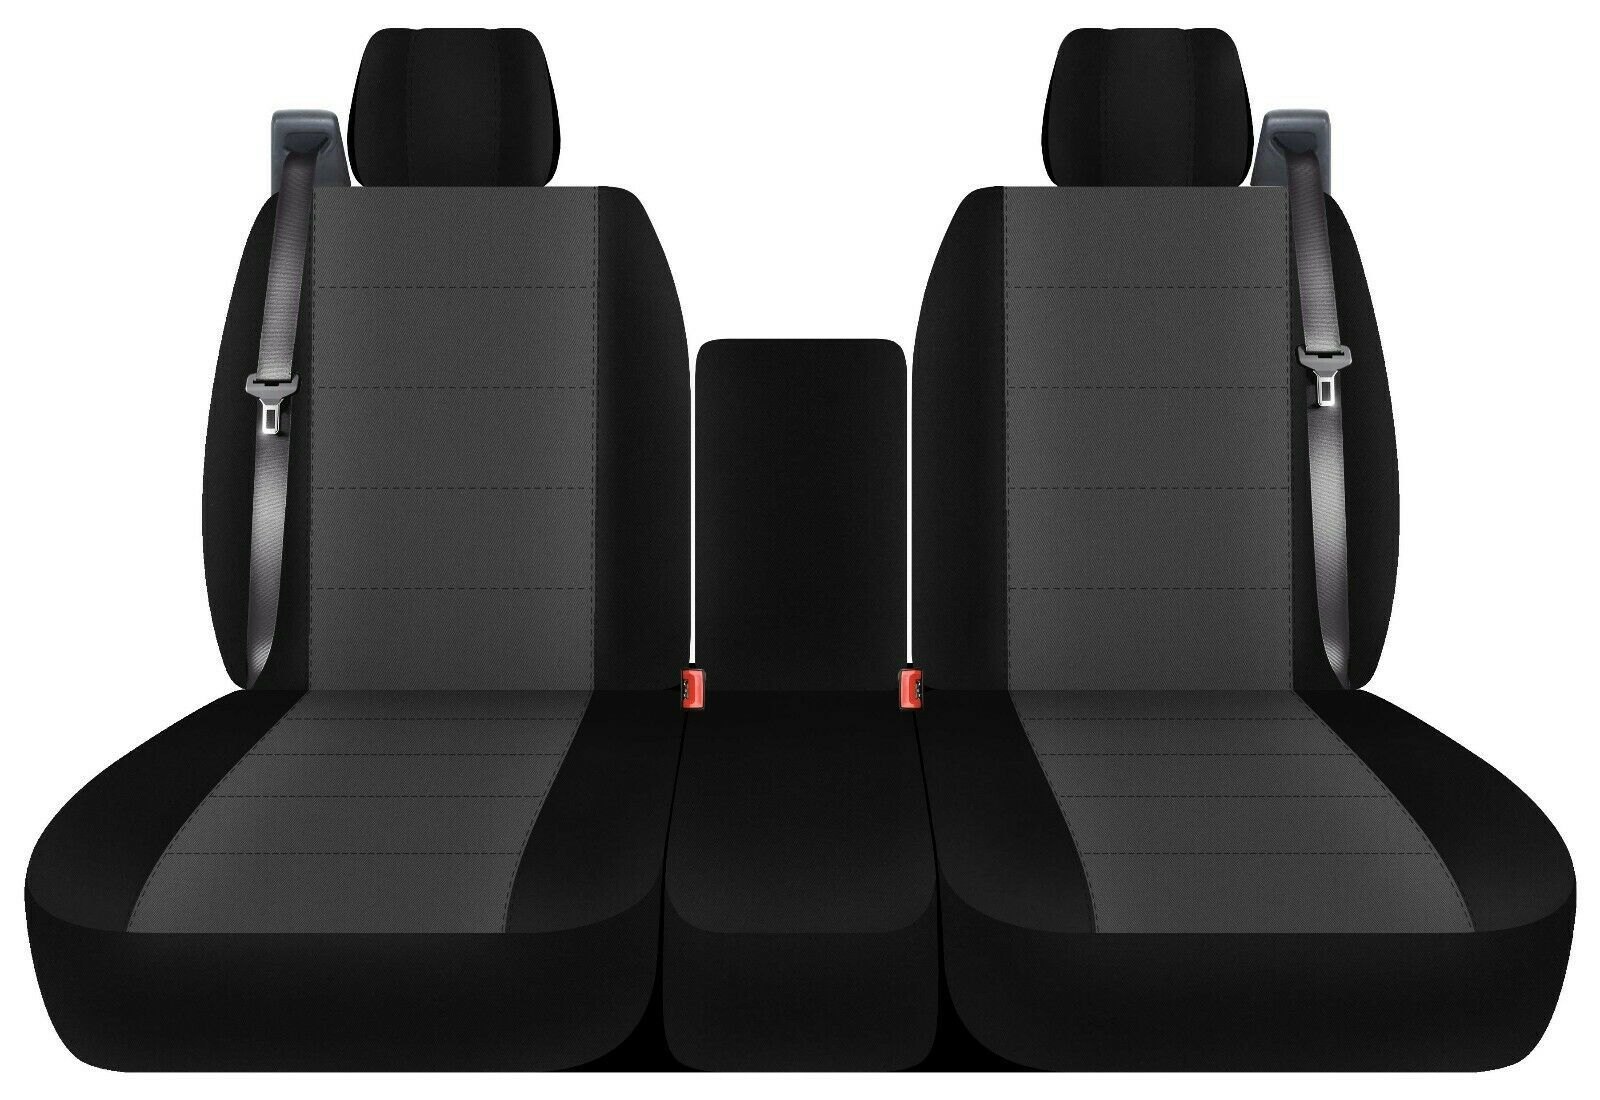 Front set 40/20/40 car seat covers fits FORD F150 TRUCK 2004-2008 select style - $93.14 - $102.49